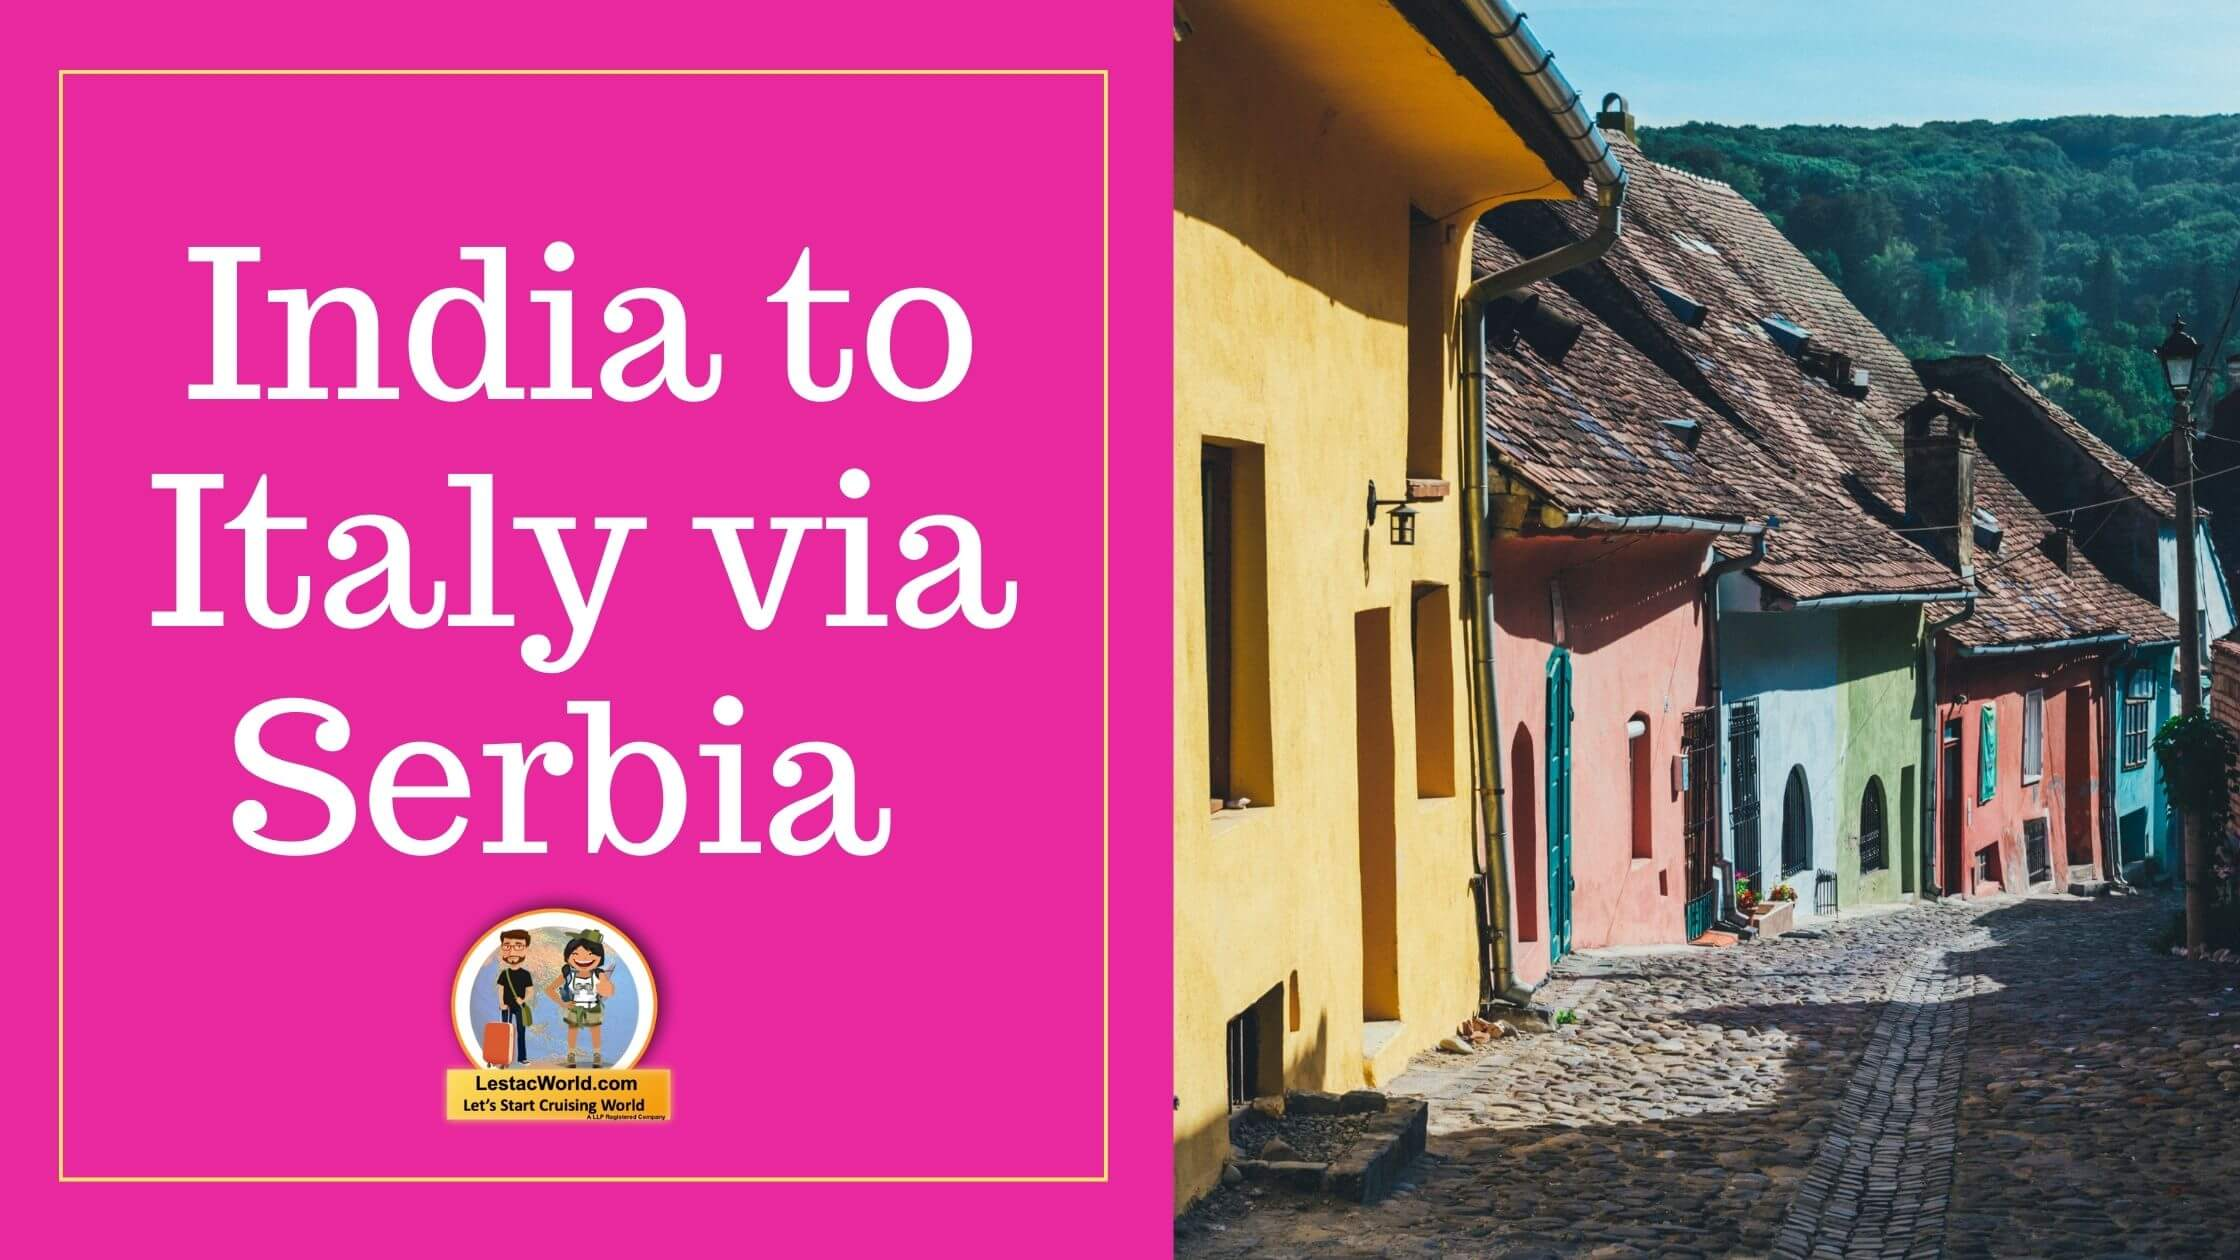 Read more about the article India to Italy via Serbia!